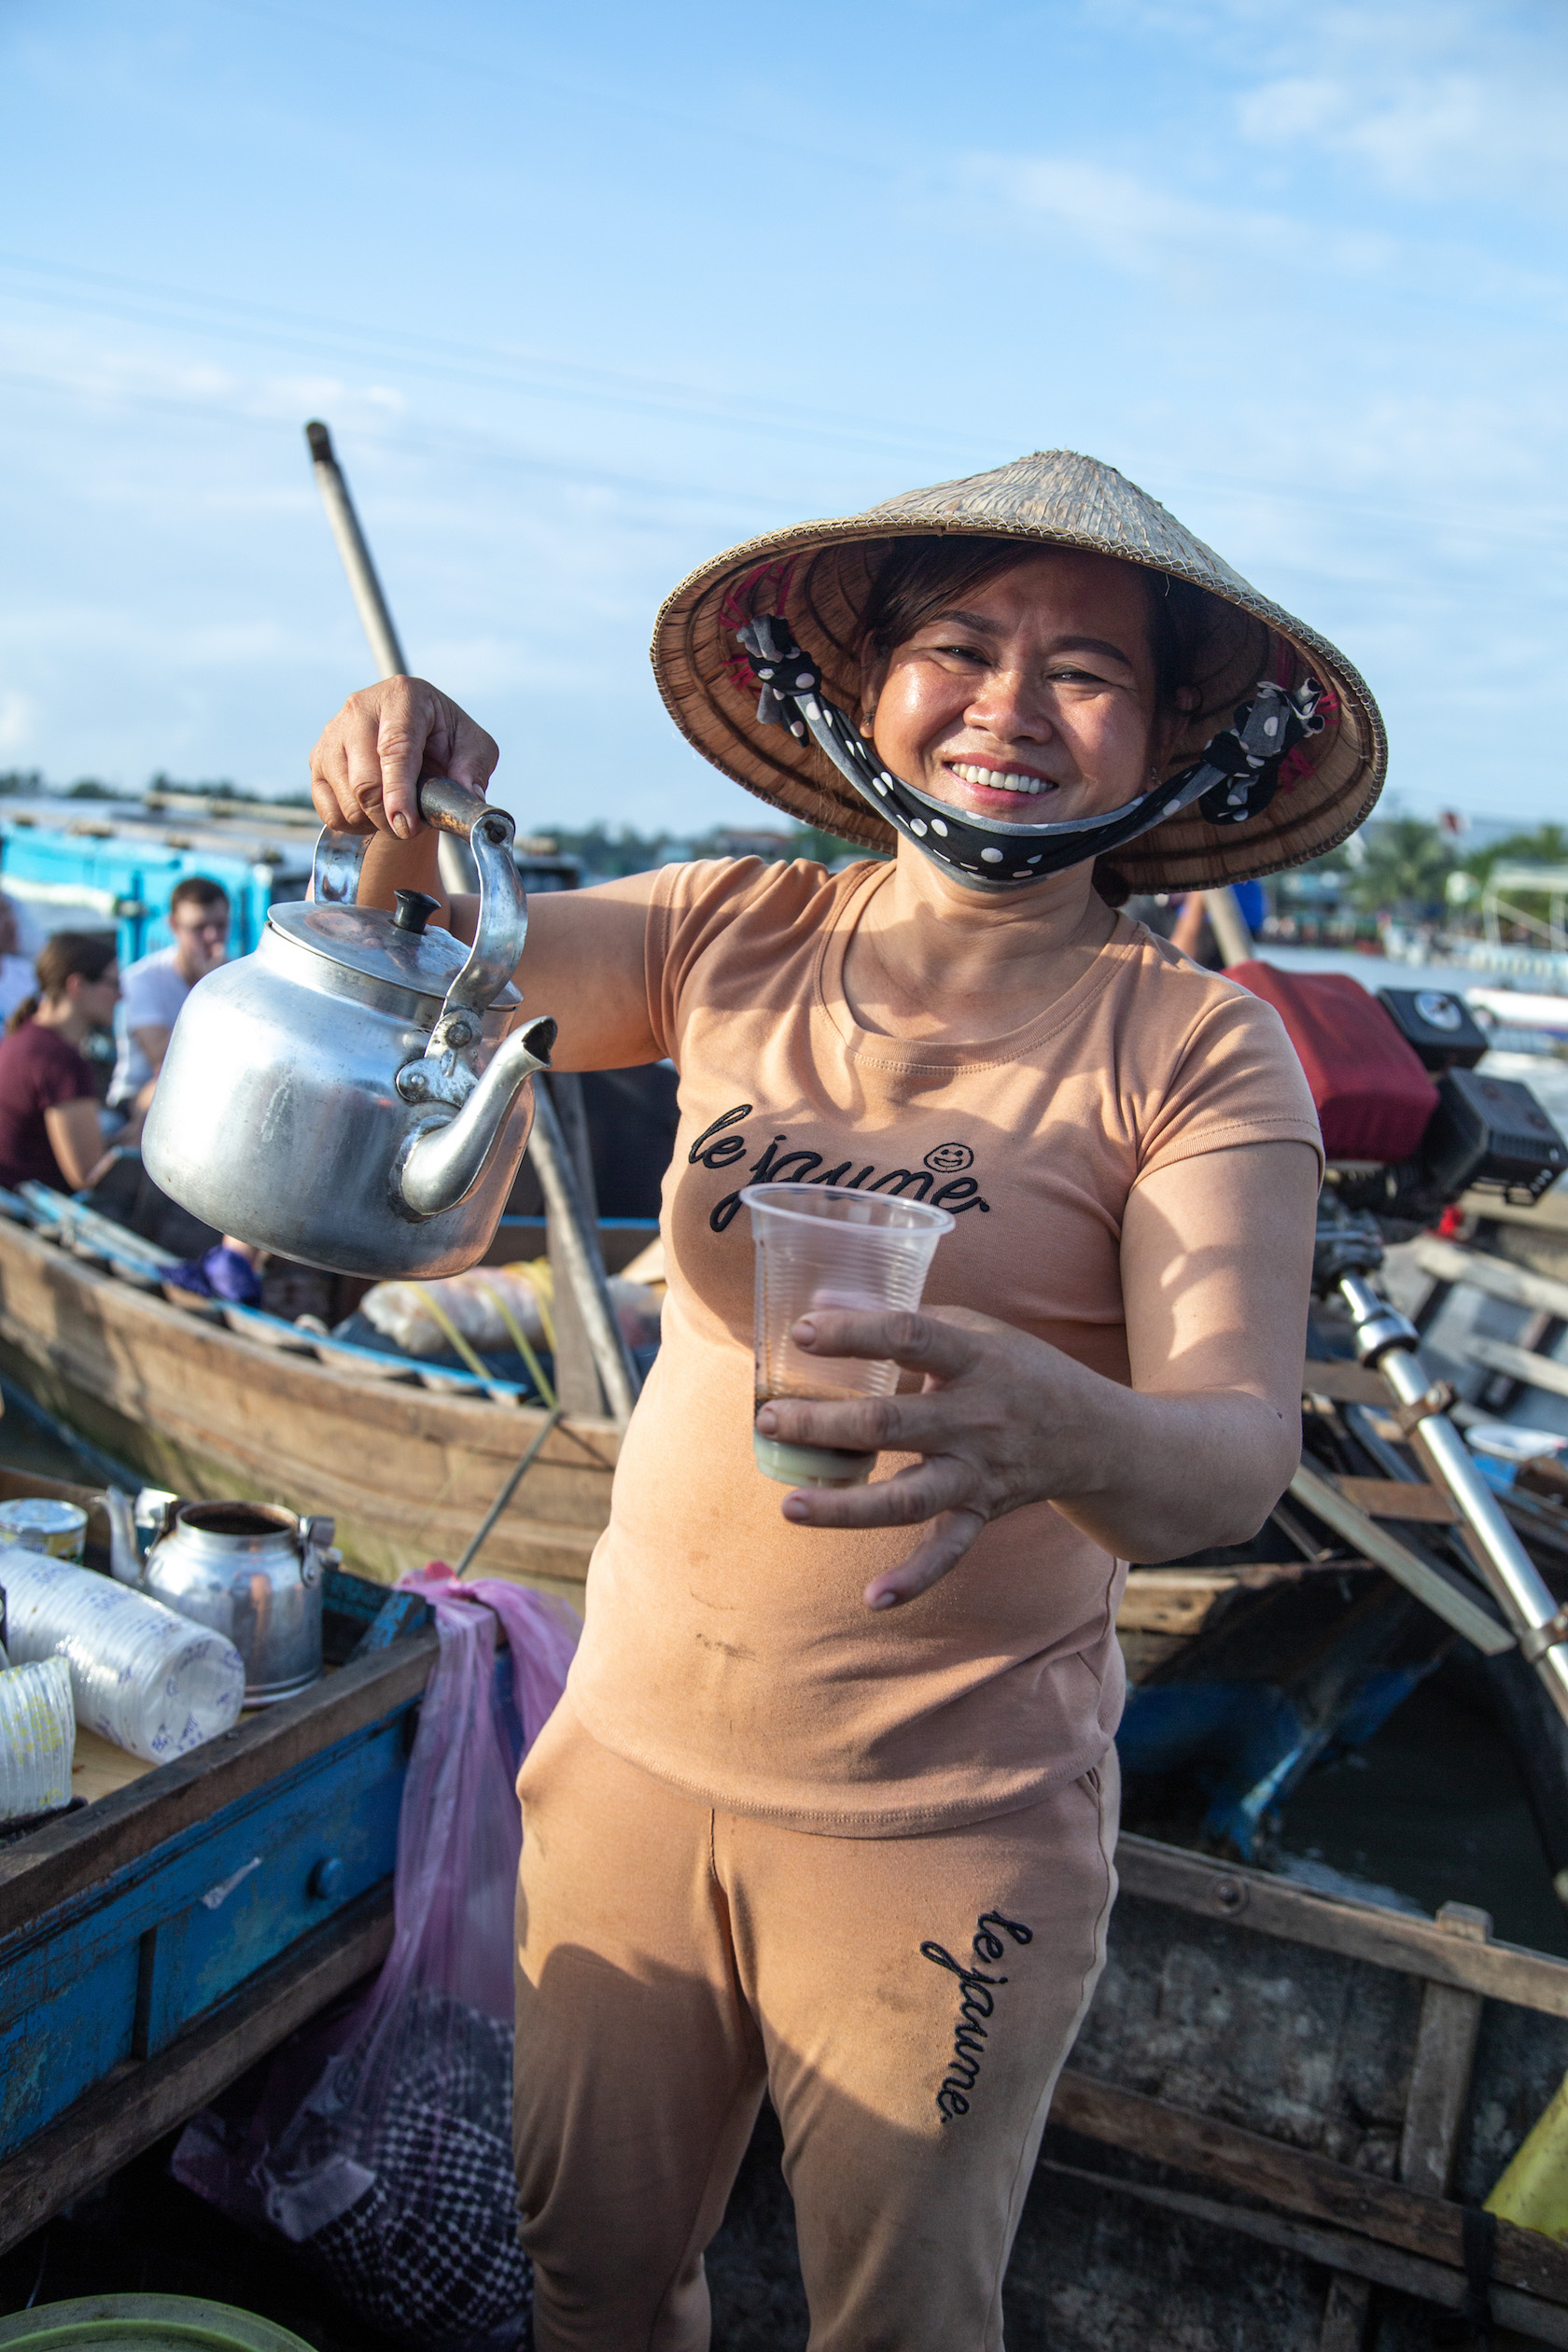 A woman smiles while holding a kettle and a cup of coffee near her boat storefront.